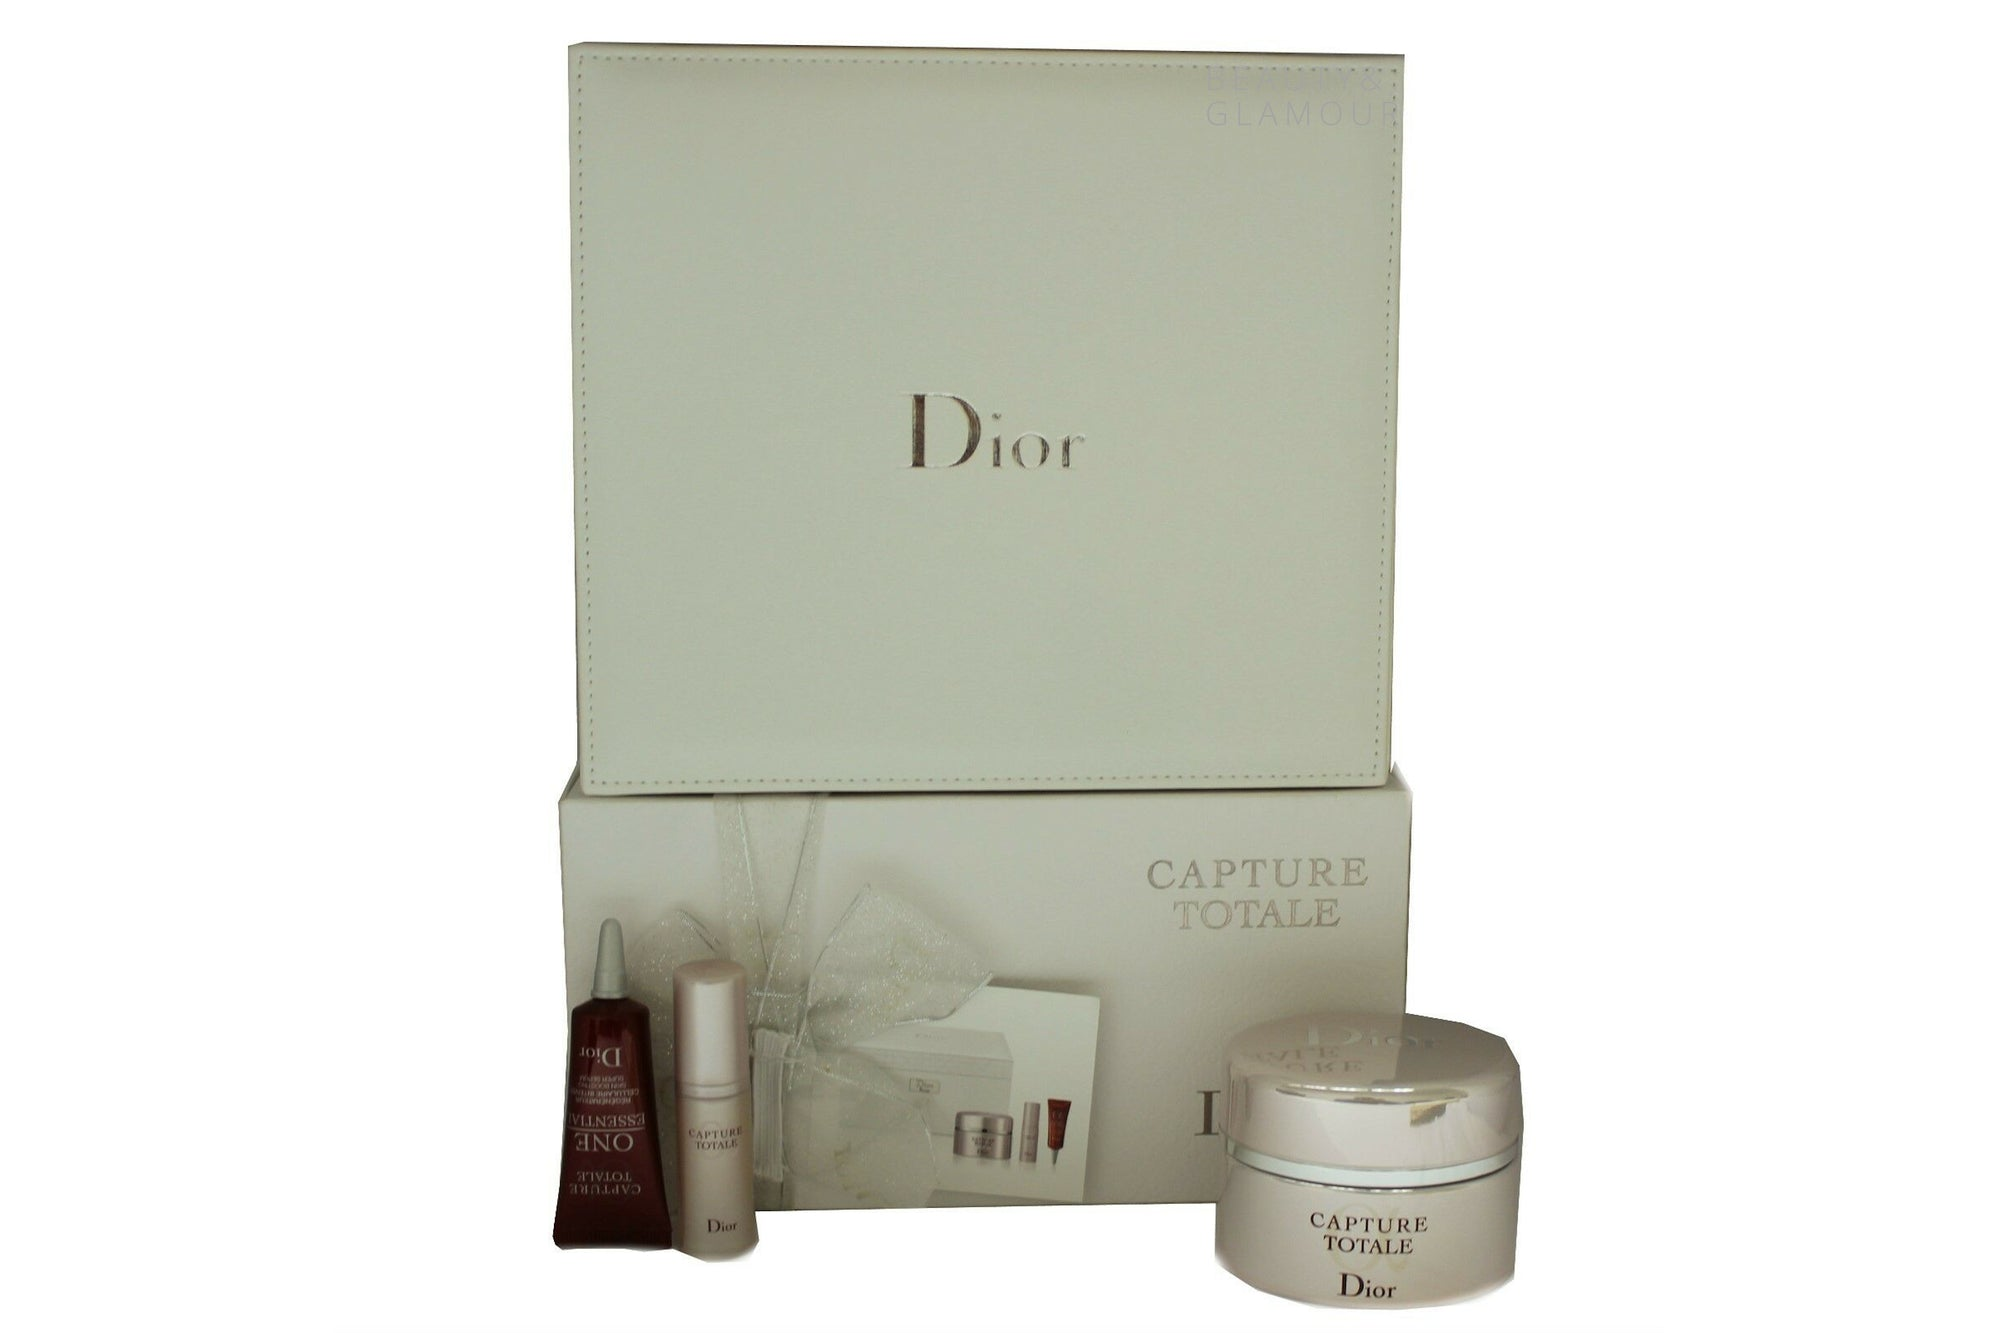 DIOR CAPTURE TOTALE MULTI-PERFECTION CREME SET